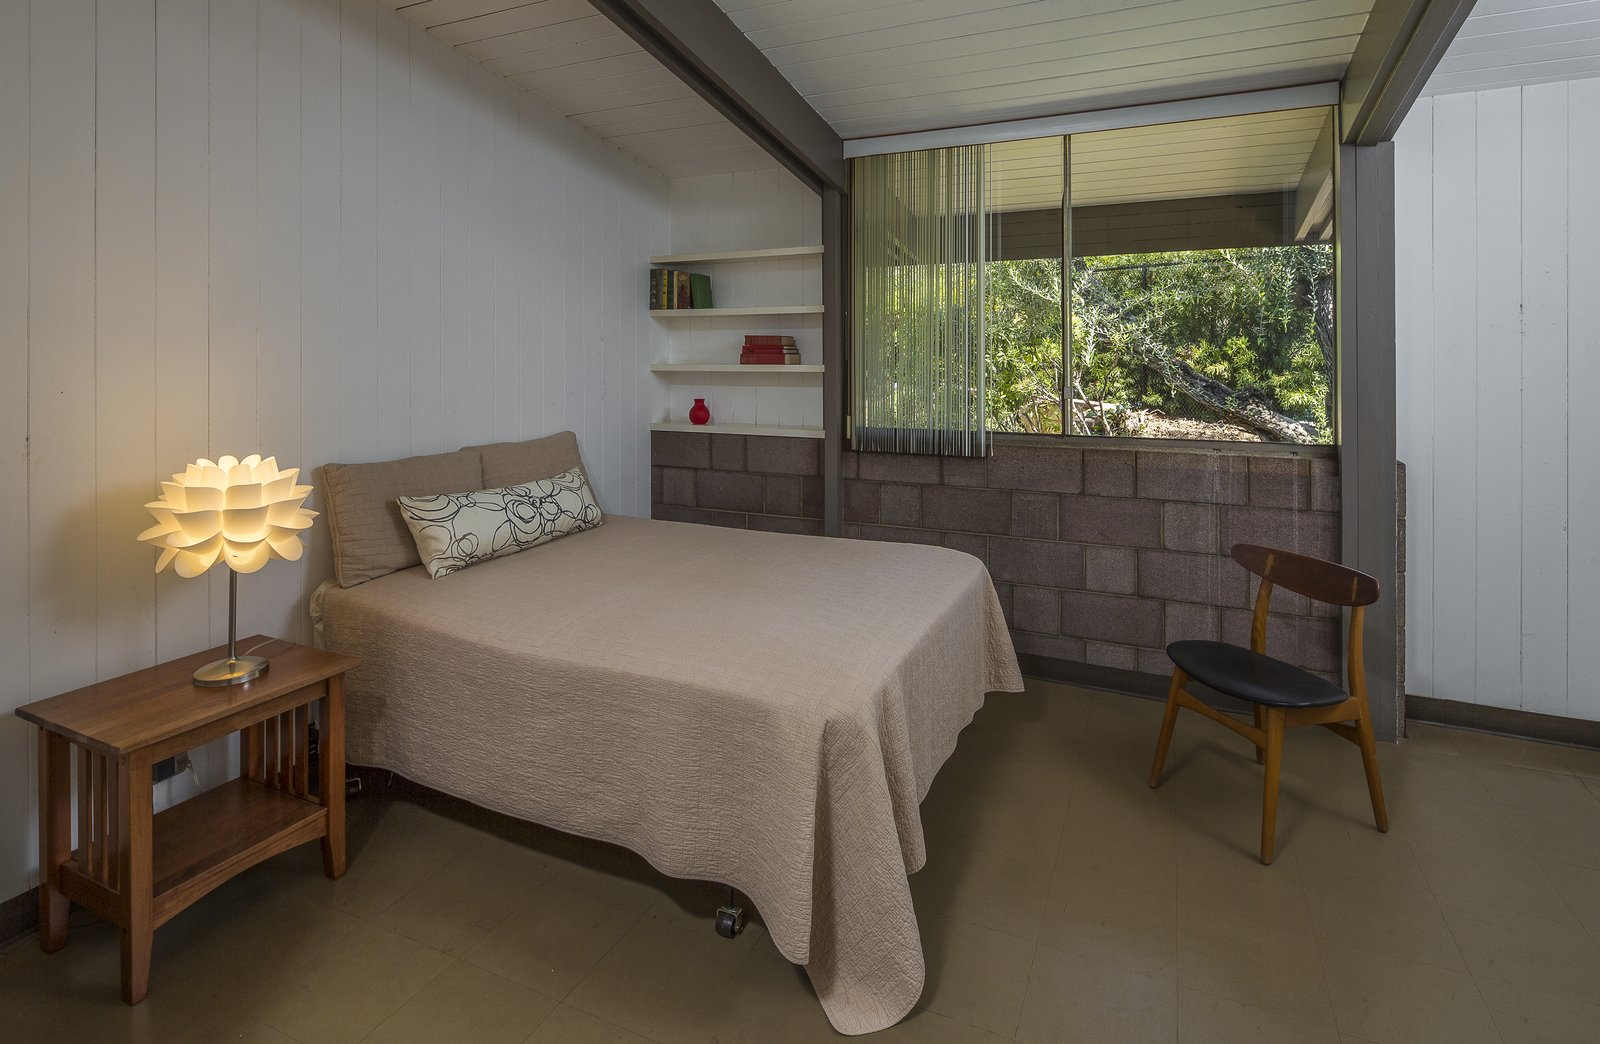 Bedroom, Lamps, Night Stands, Shelves, Bed, Chair, and Table Lighting The house has three bedrooms.  Best Photos from Own This L.A. Midcentury by A. Quincy Jones For $2.45M